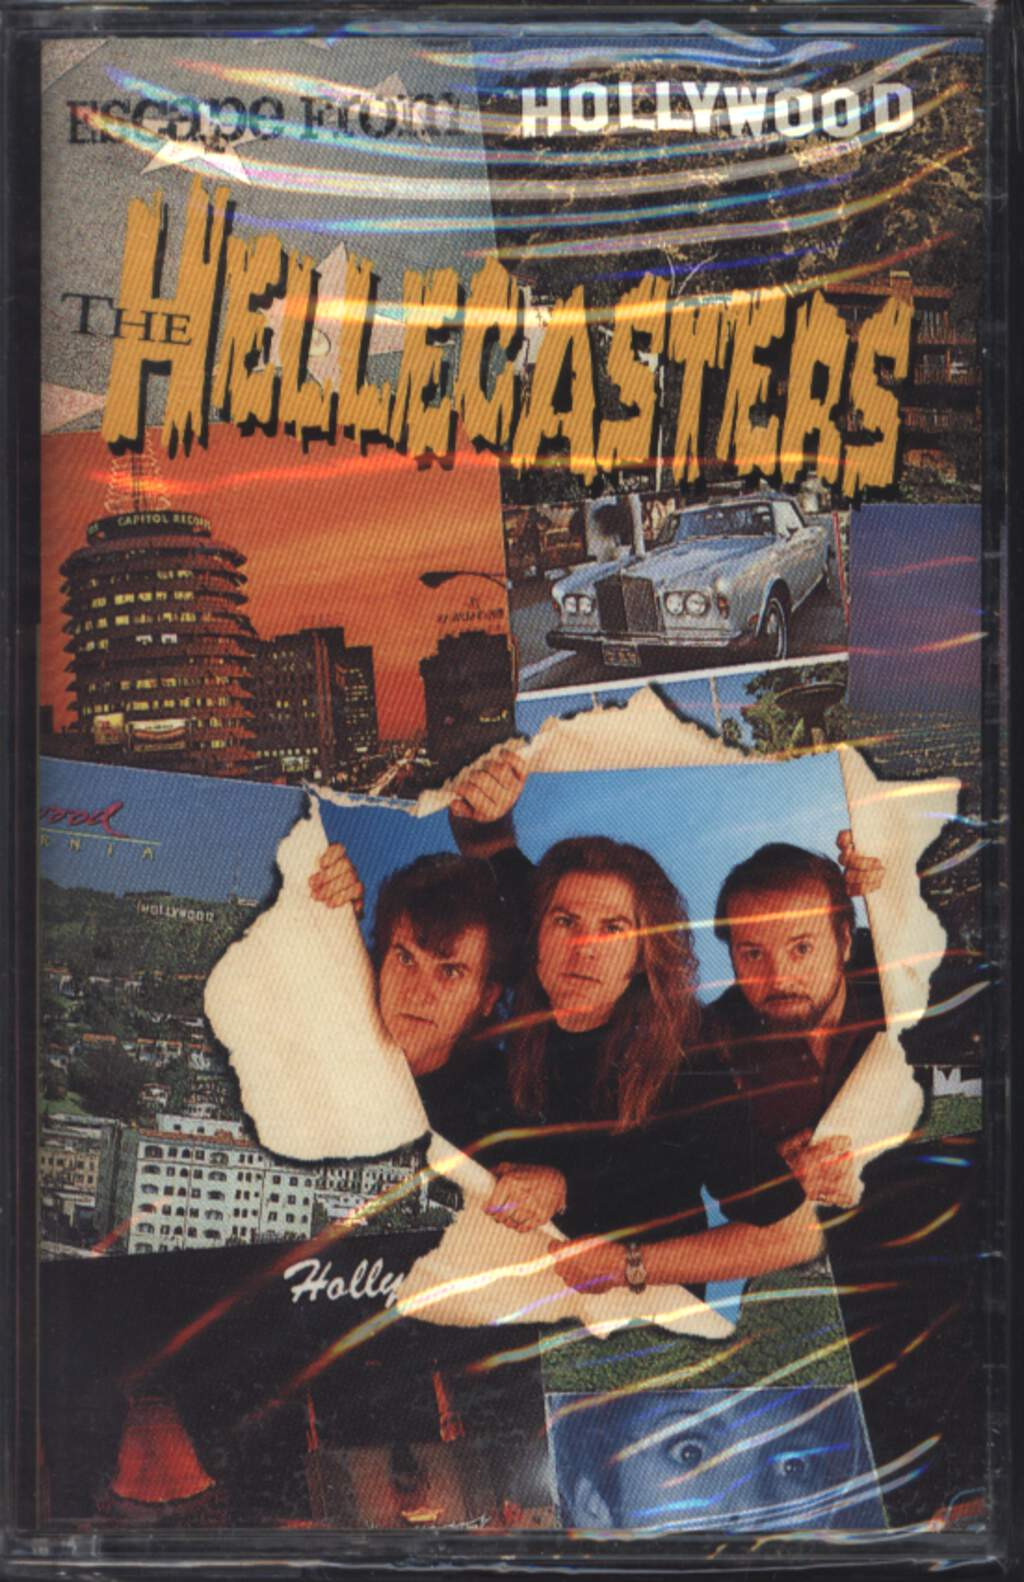 The Hellecasters: Escape From Hollywood, Compact Cassette